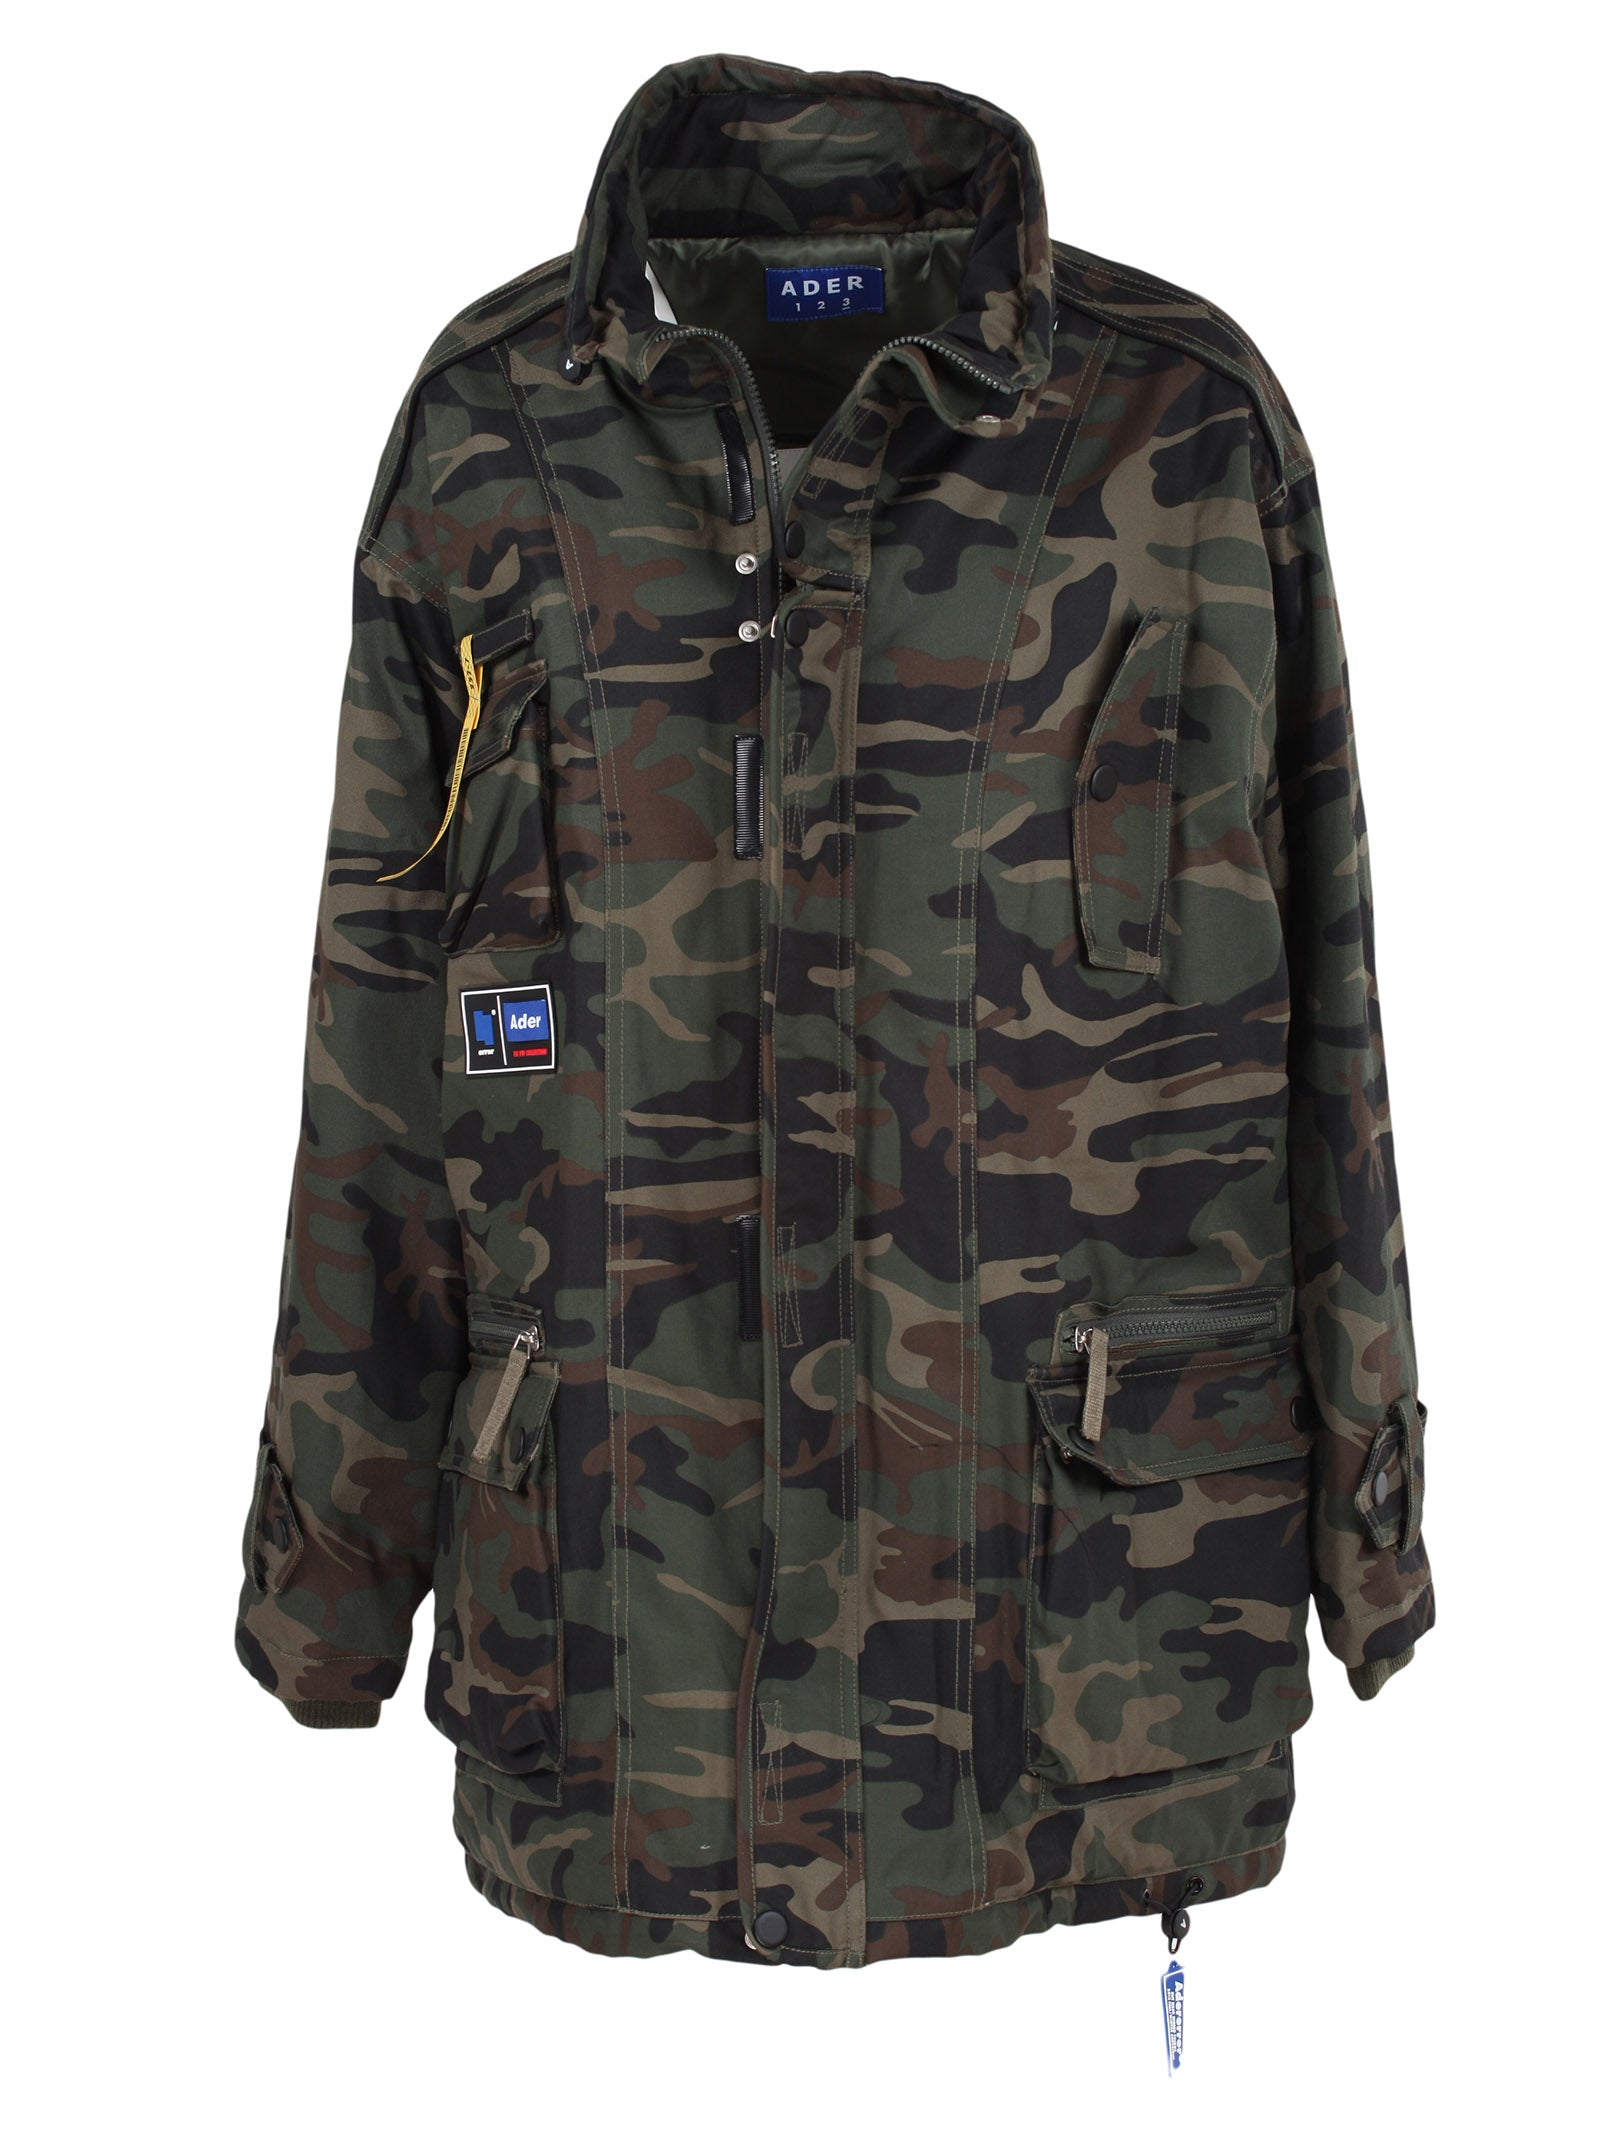 ADER ERROR OVERSIZED CAMO PRINT JACKET